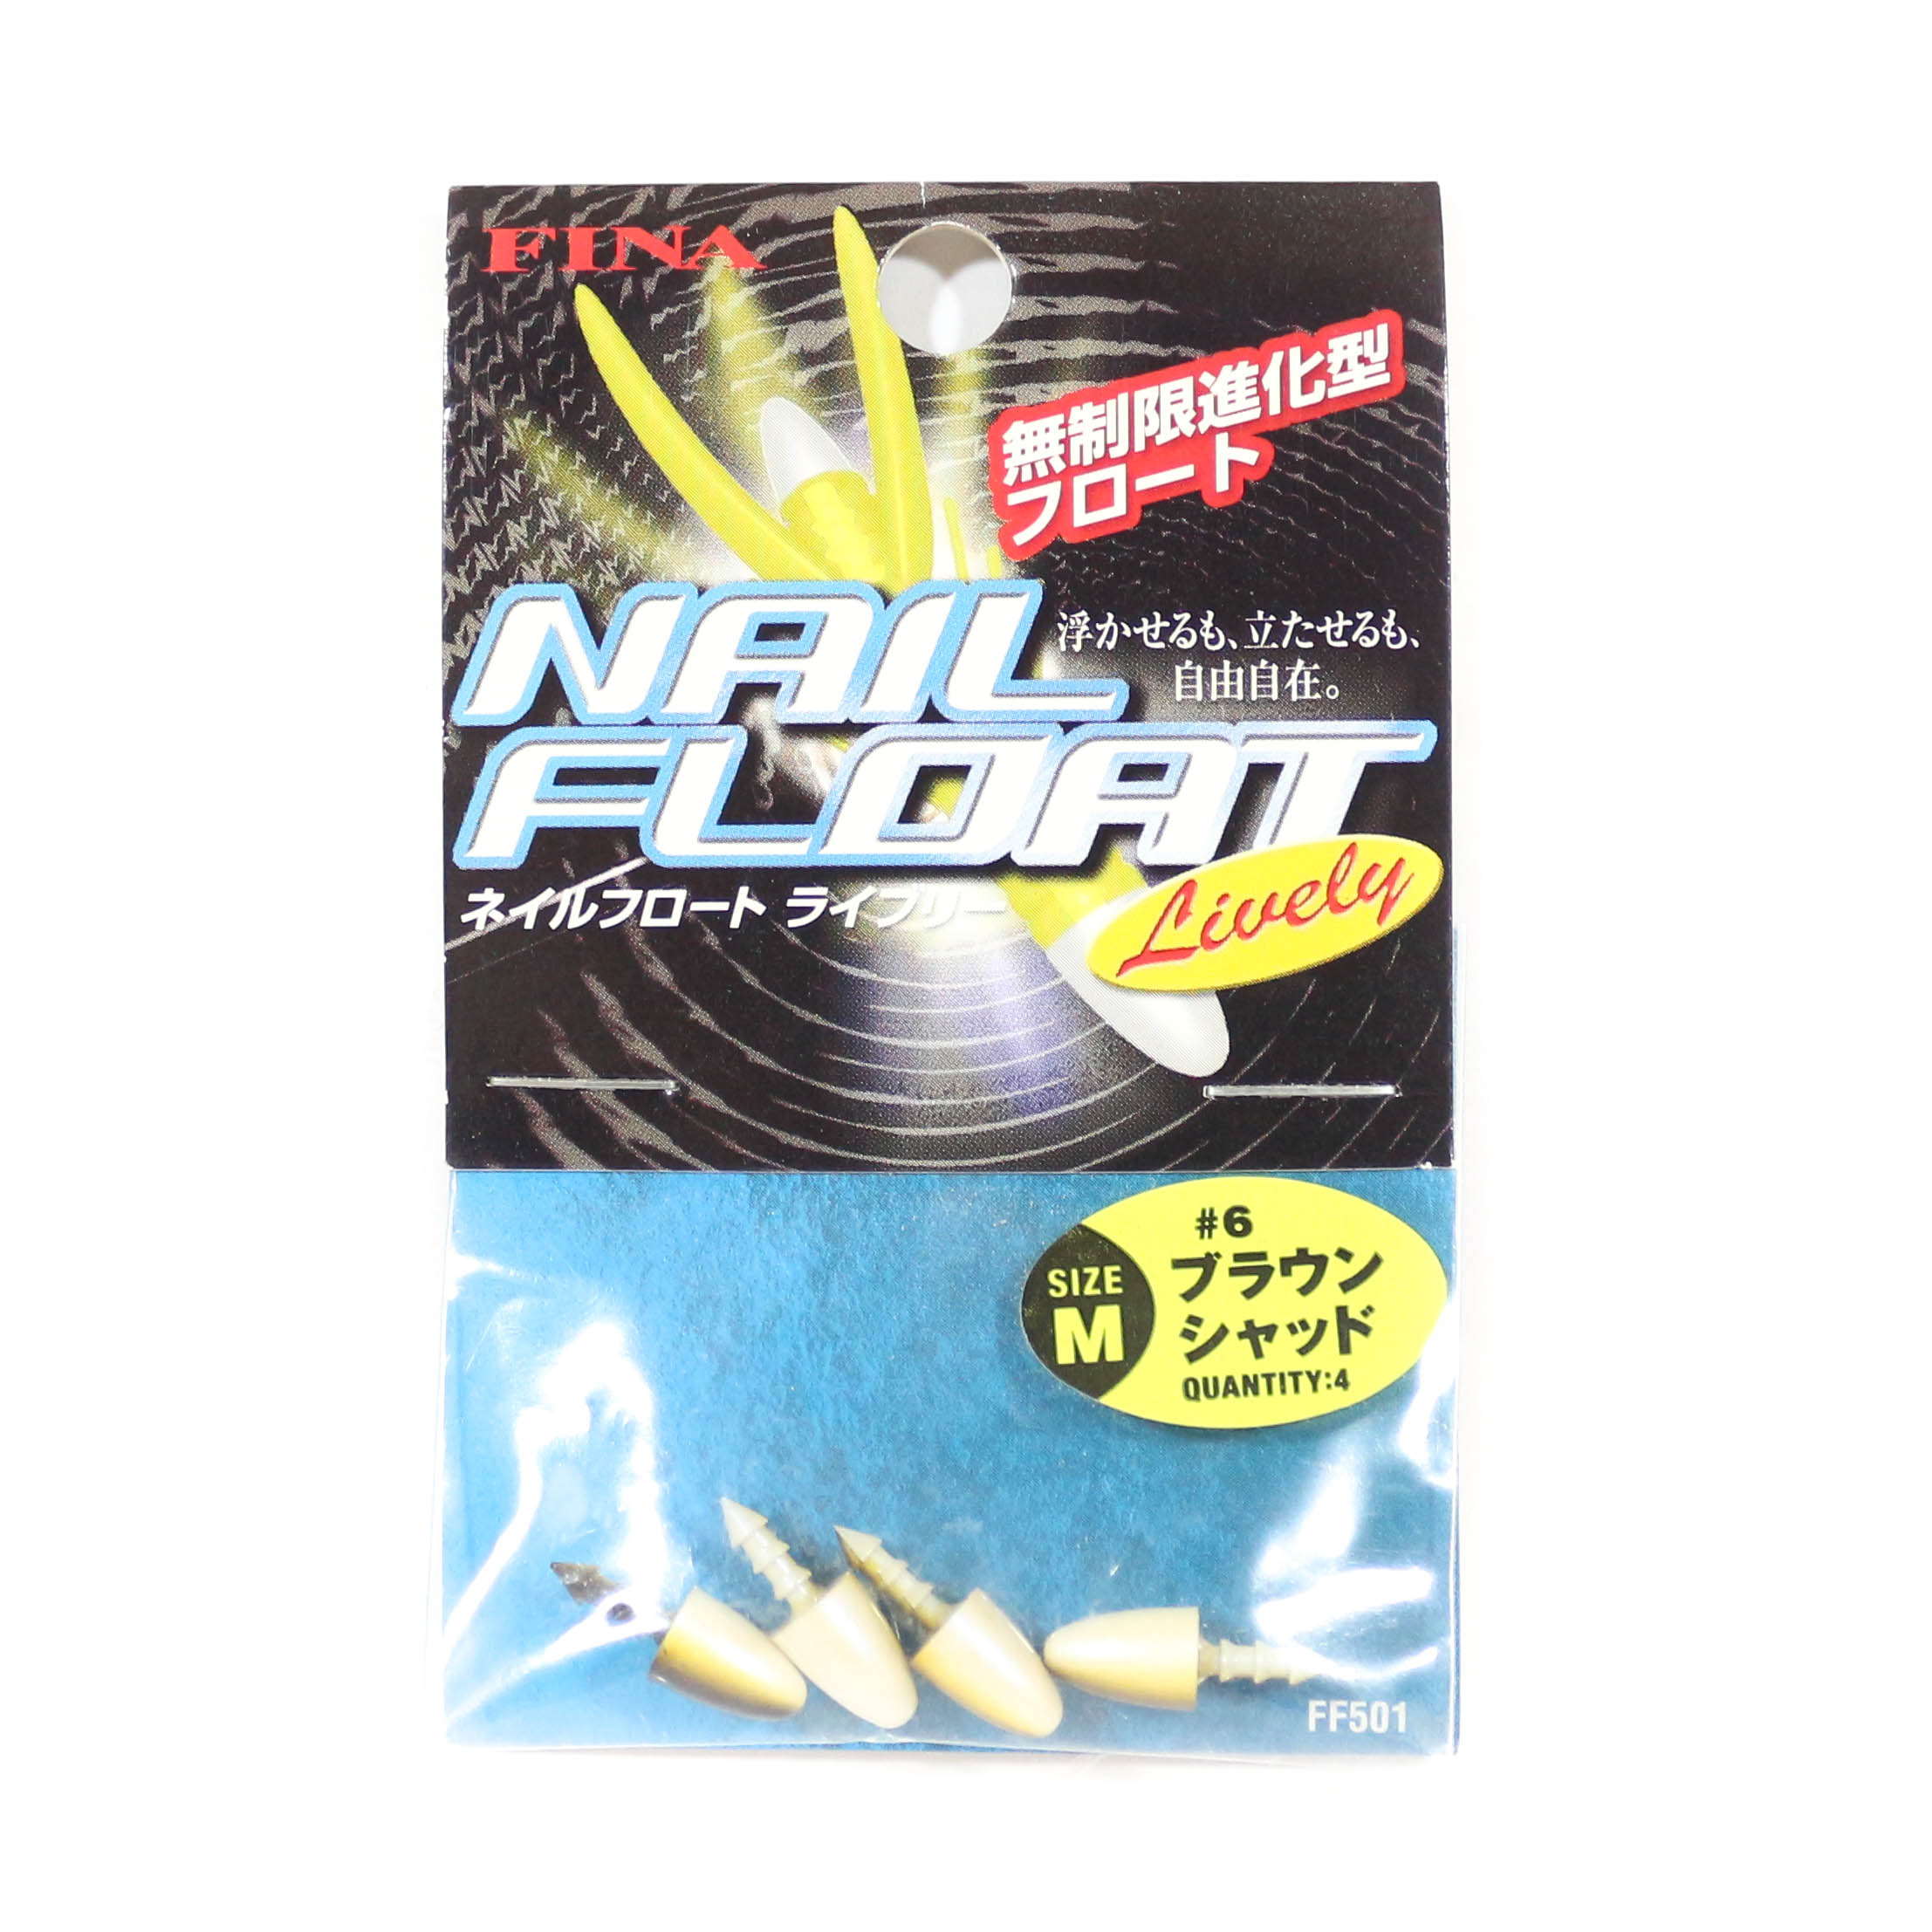 Fina FF501 Nail Float Lively Size M for Hook Size 6 Brown (7403)